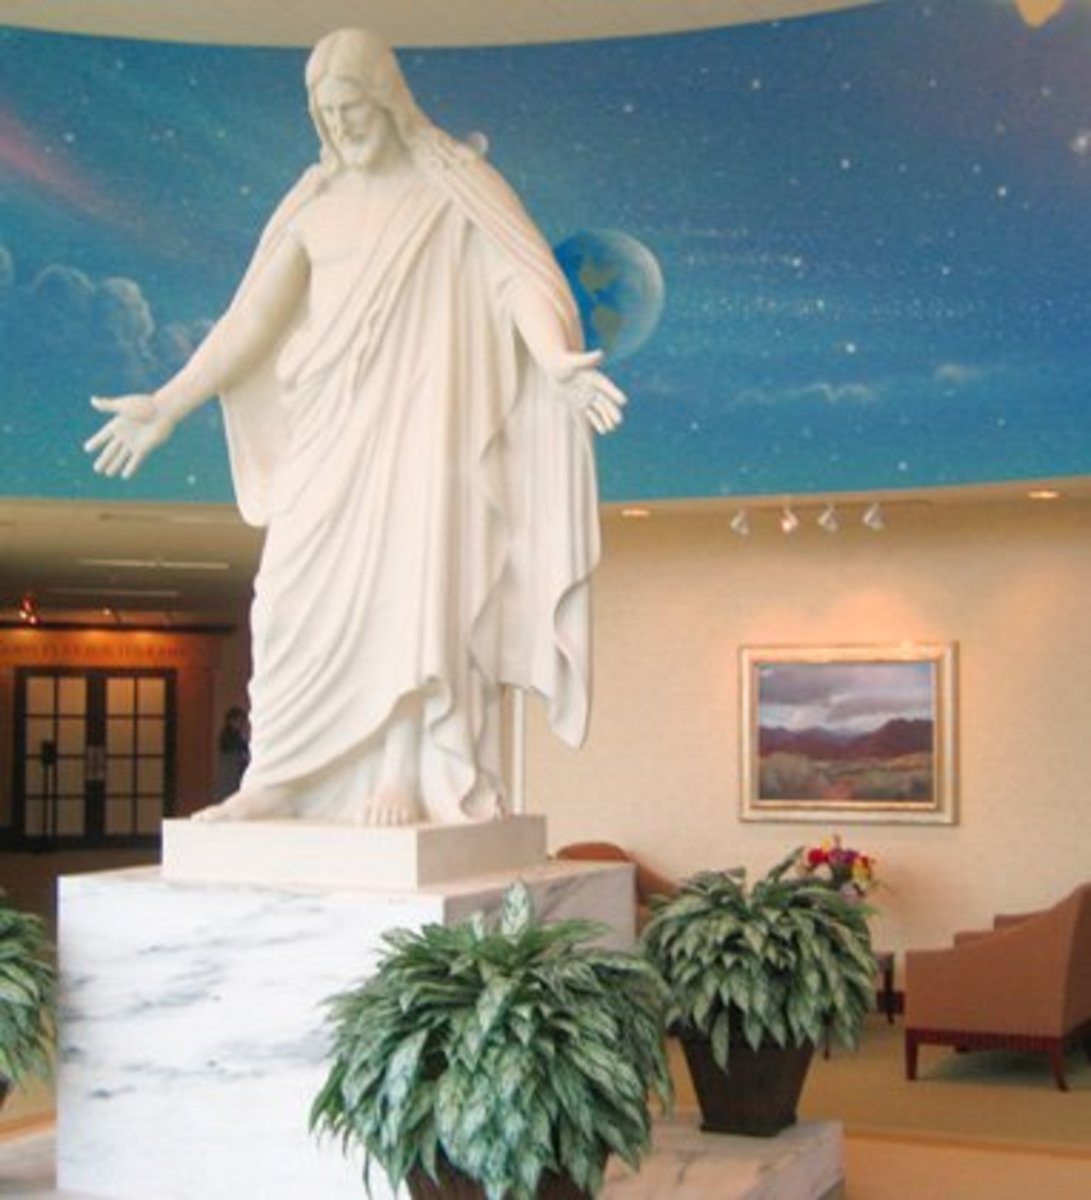 A replica of Thorvaldsens Christus is located inside the St. George Visitor Center.